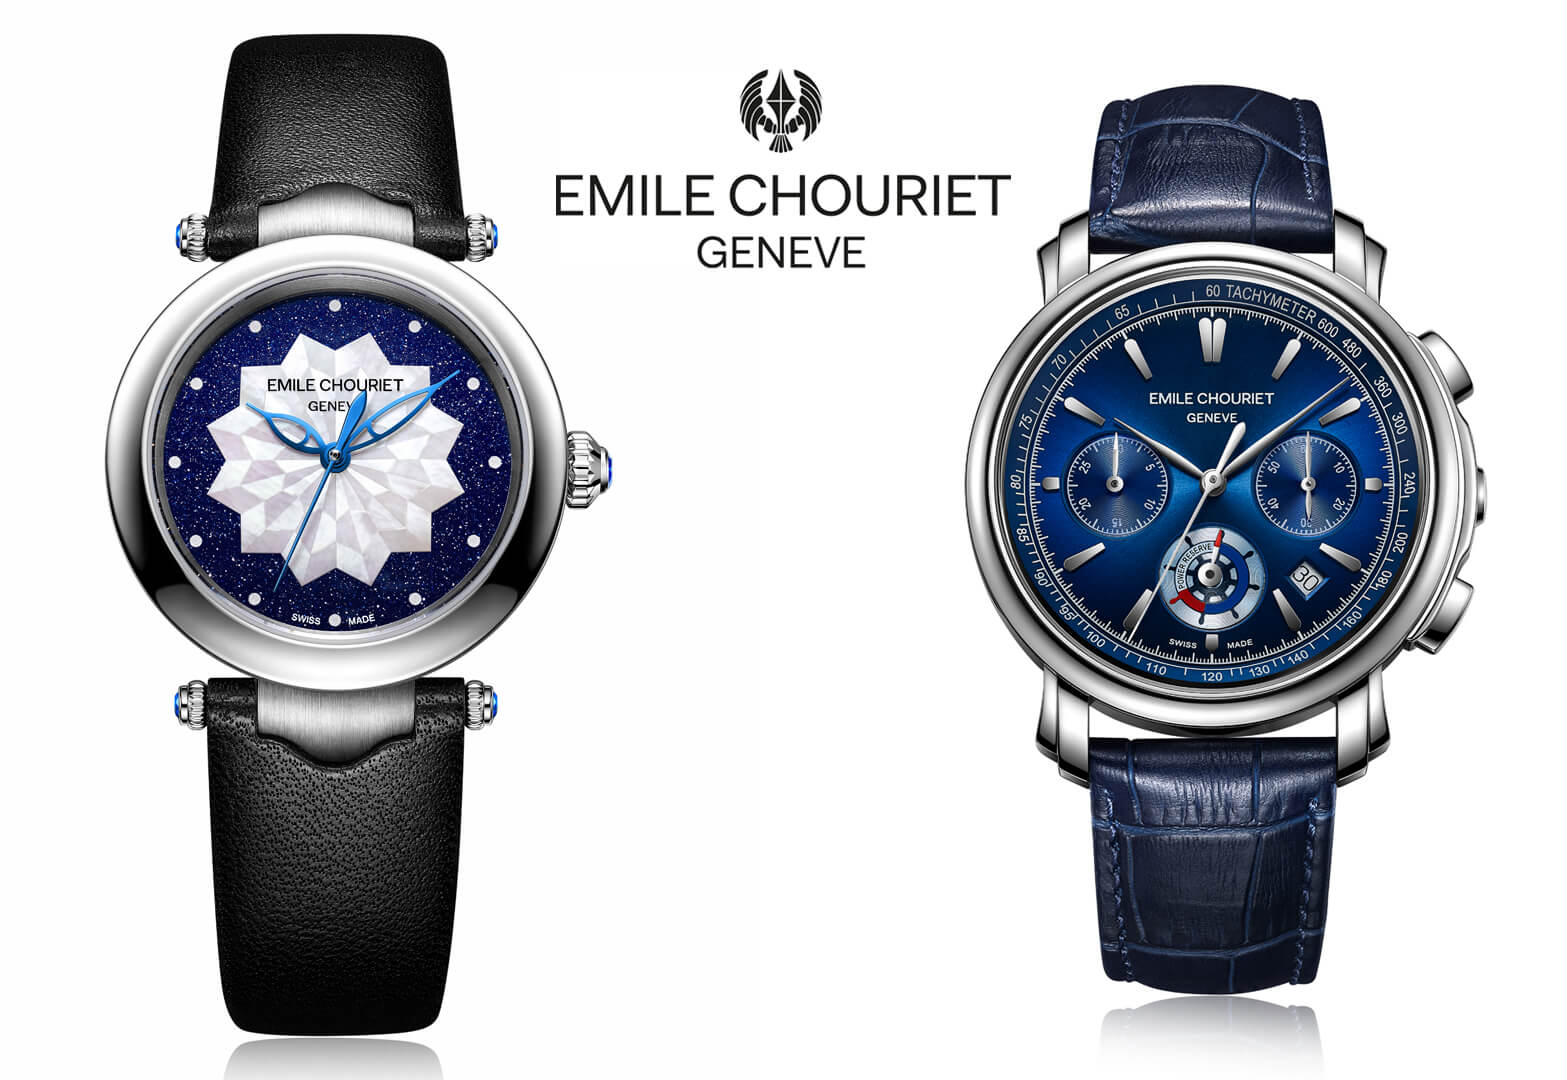 The Emile Chouriet Women's Fair Lady Lotus Blue Watch and Men's Lac Leman Chronograph Blue Watch